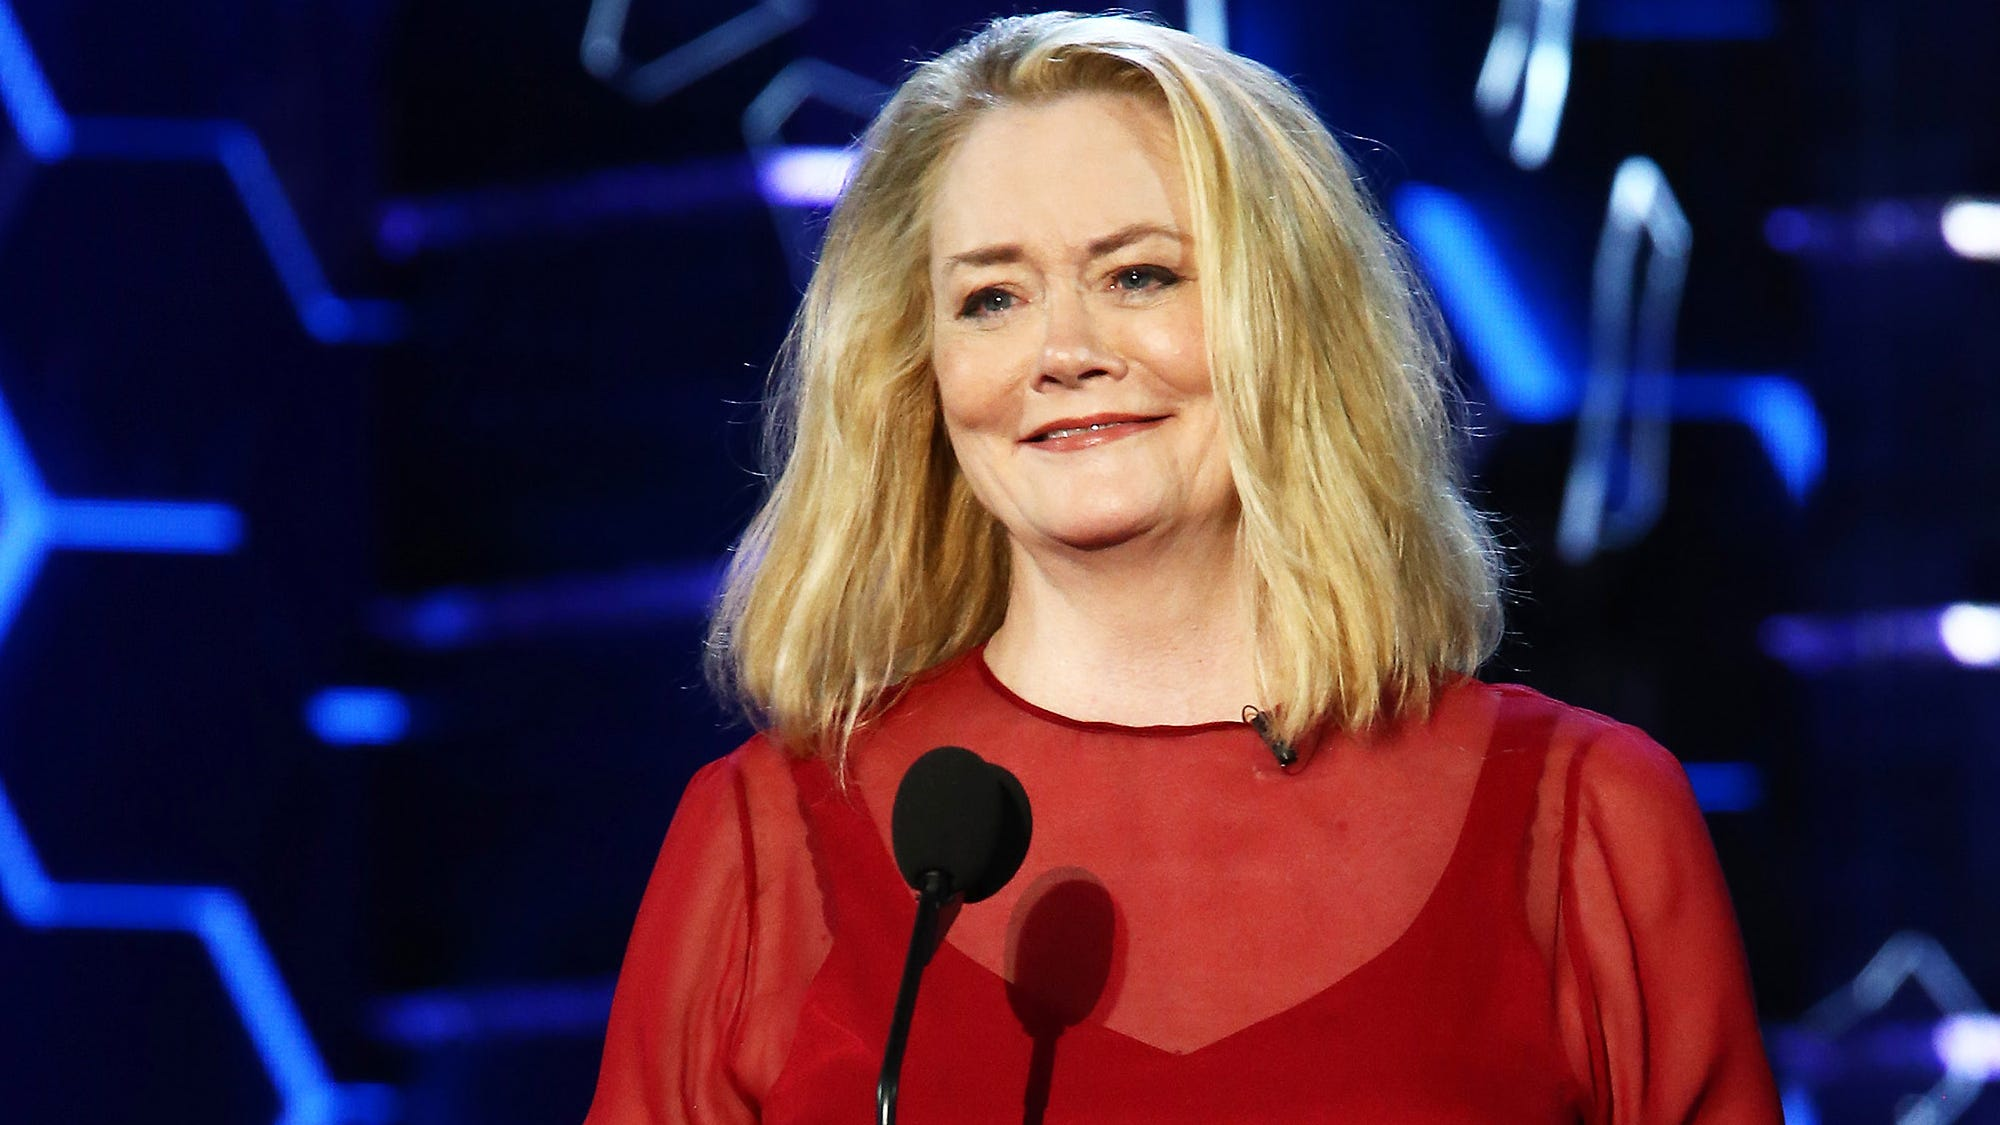 Cybill Shepherd is one of the highest-profile women so far to accuse former CBS chief Les Moonves of sexual harassment and retaliation.